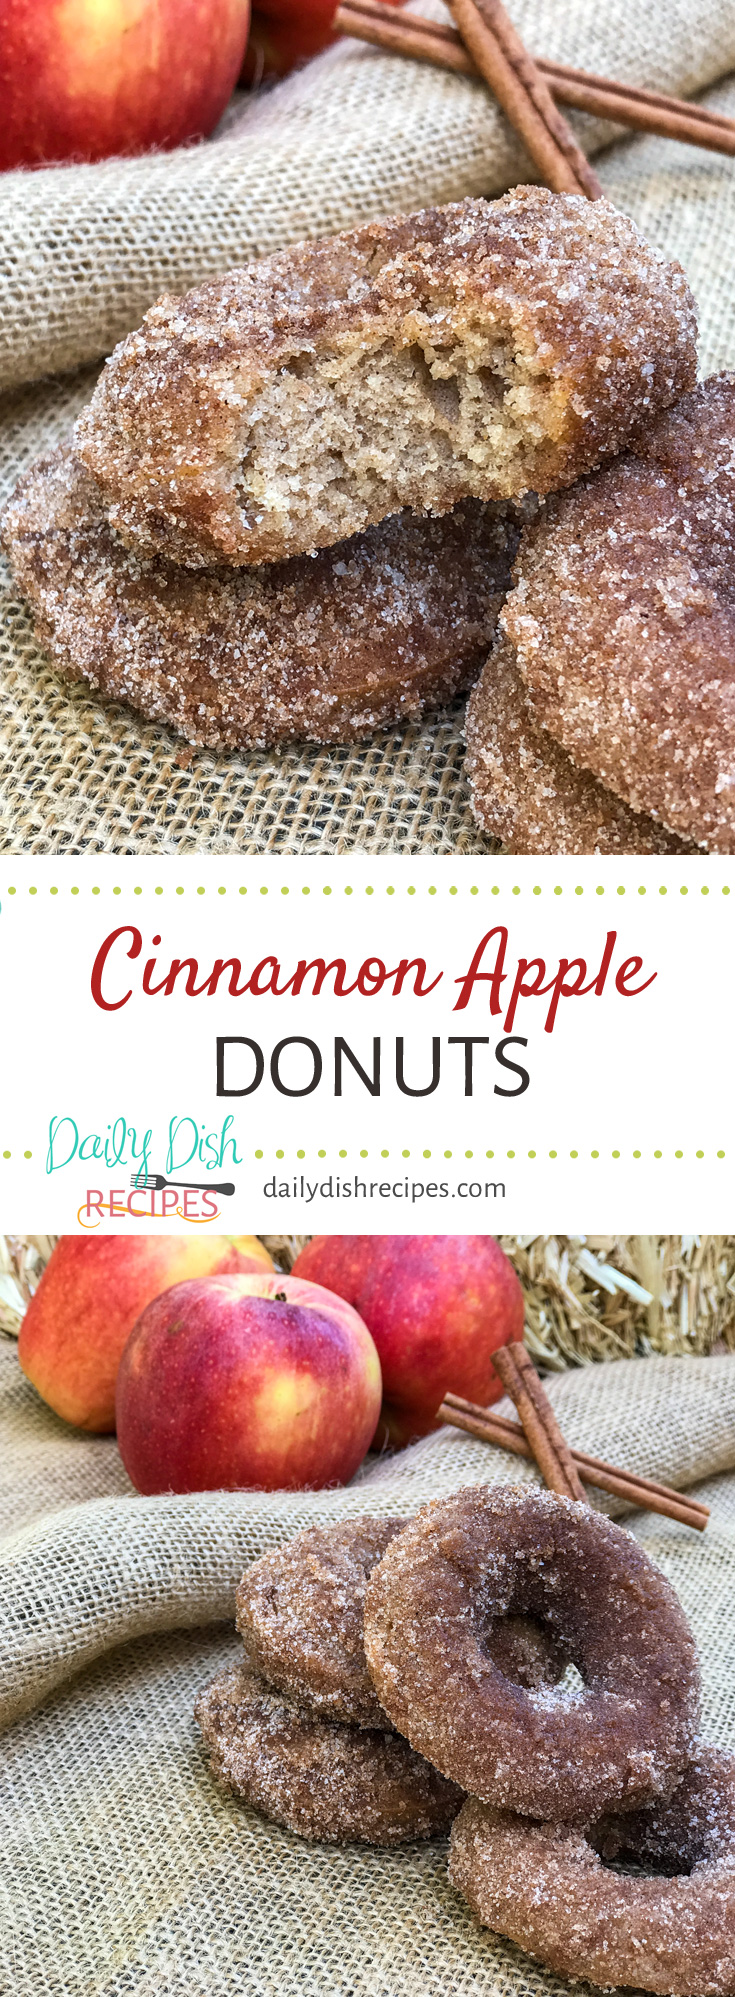 Cinnamon Apple Donuts are like fall in every bite. Moist, Soft with the perfect crumb. If you're a donut lover like me, you'll love these donuts! #appleweek